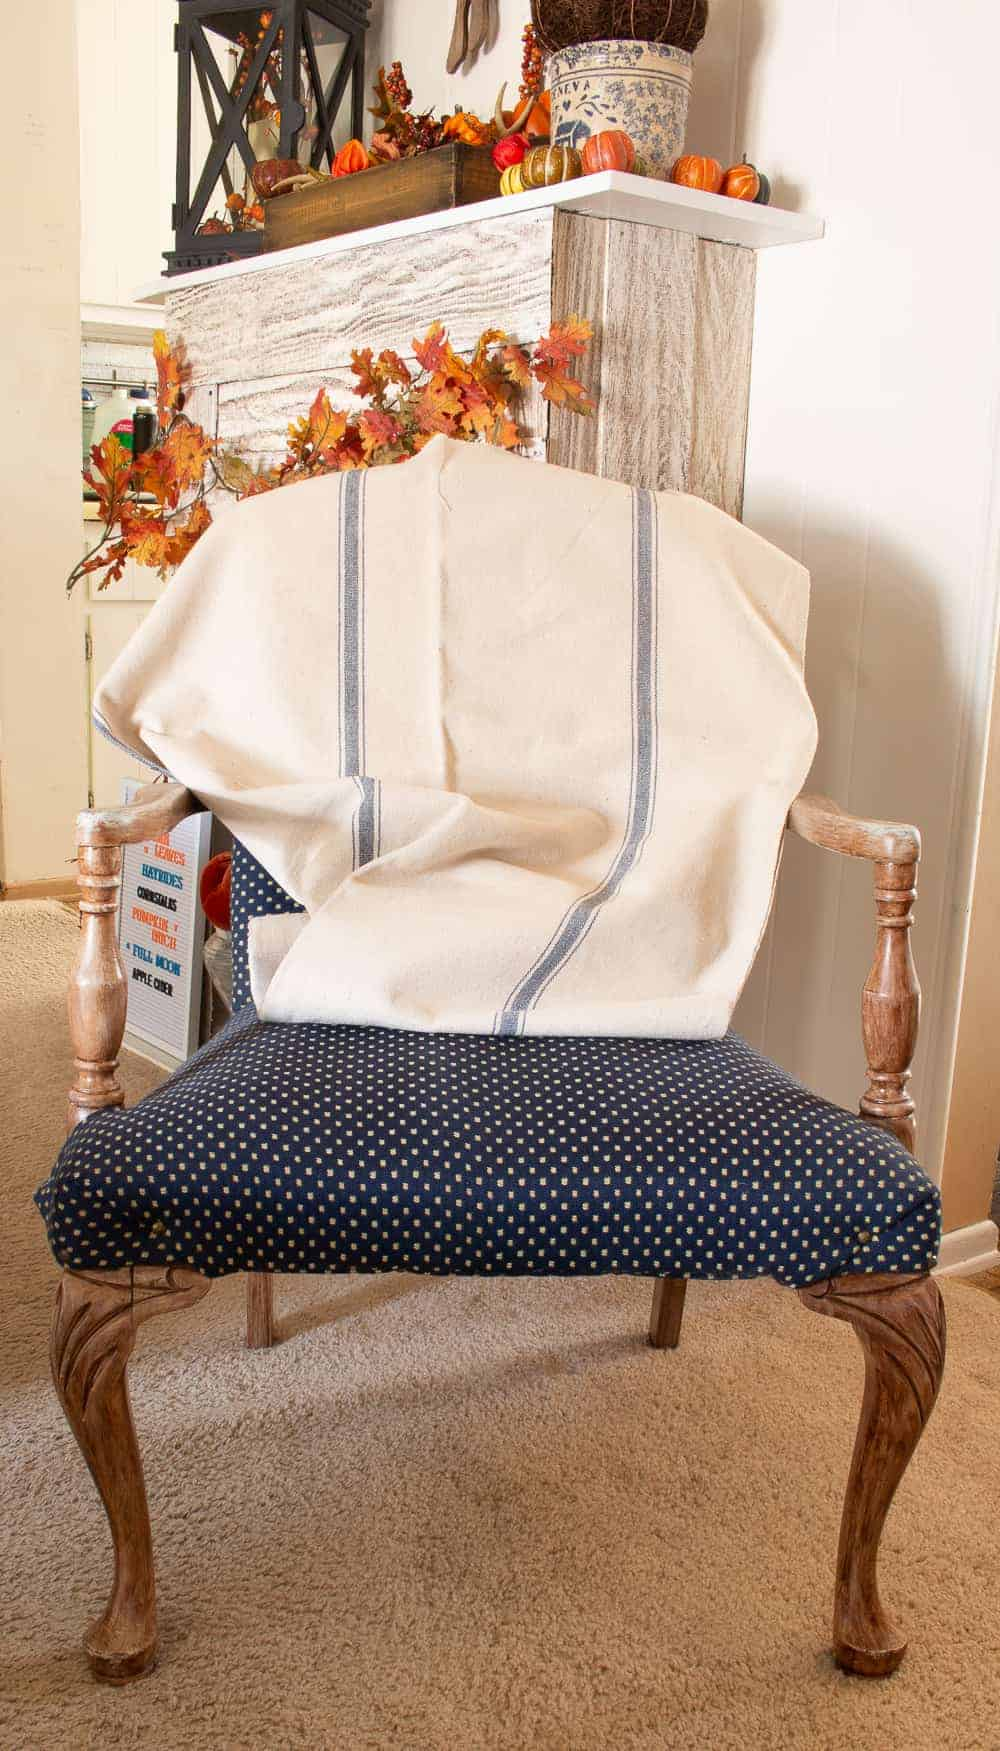 grain sac fabric draped over vintage fabric chair